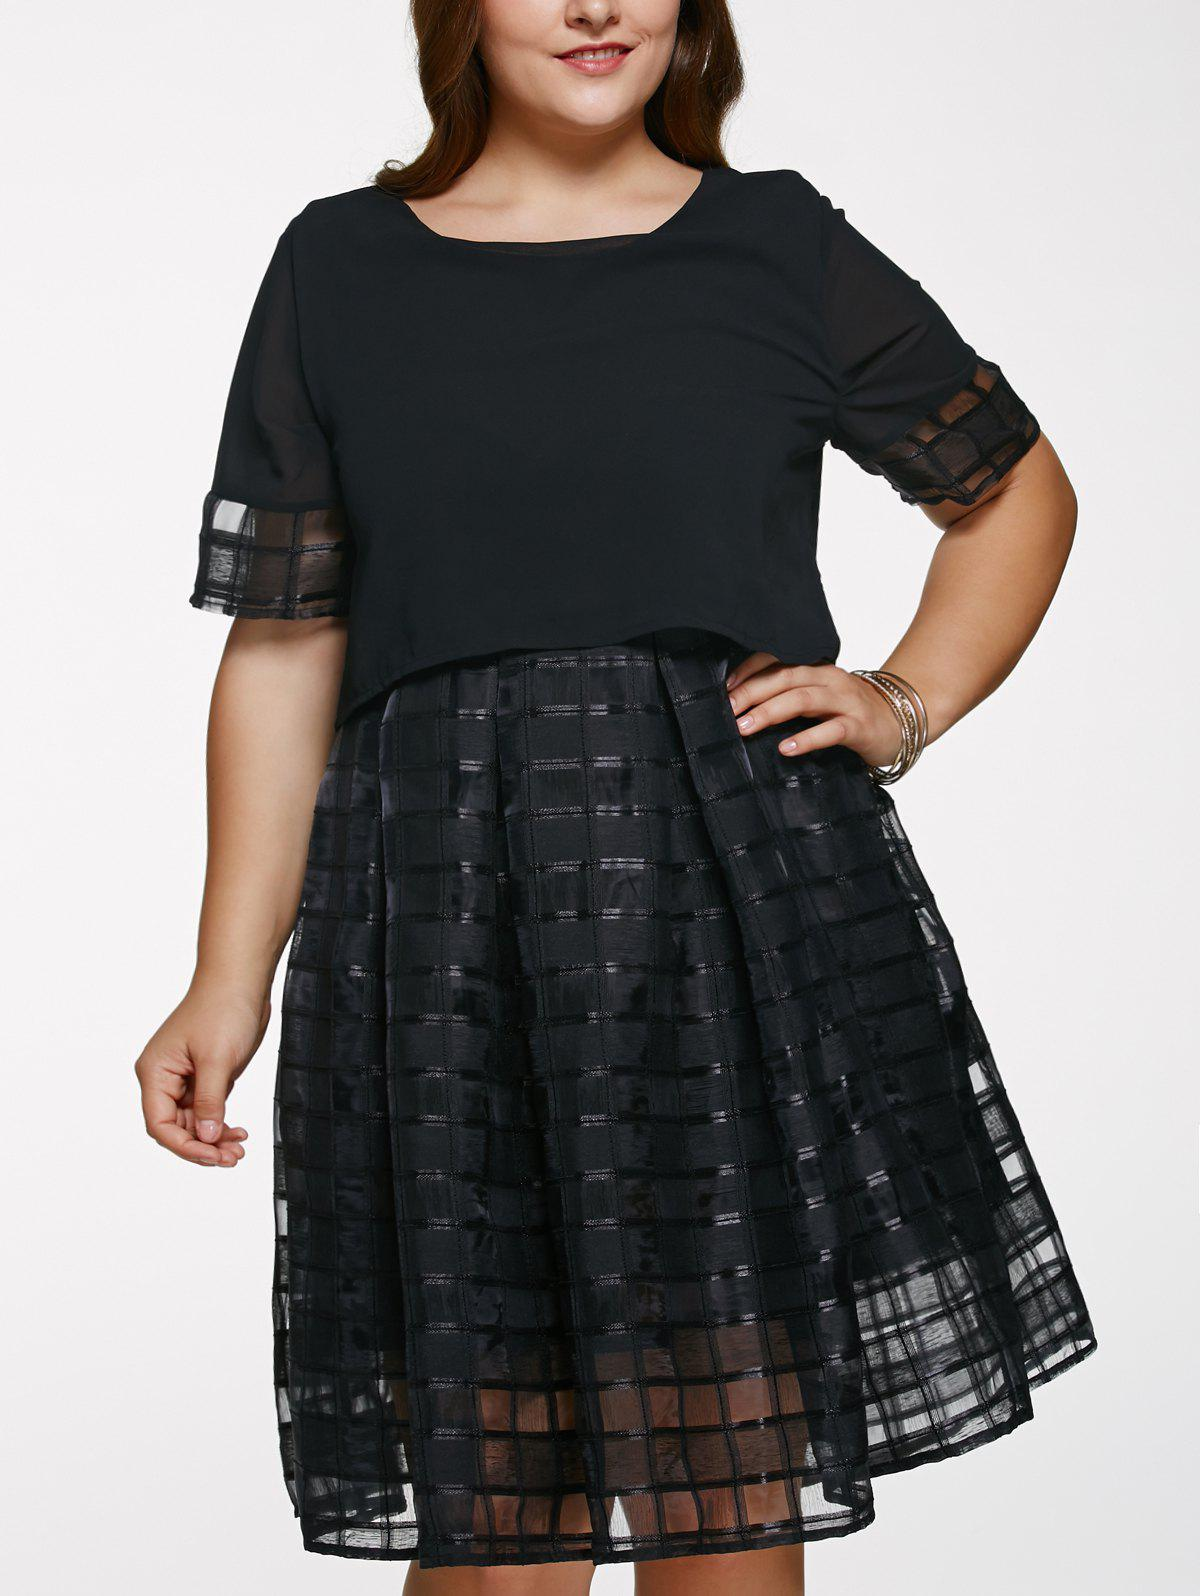 Chic Scoop Neck Plus Size See-Through Dress - BLACK 5XL